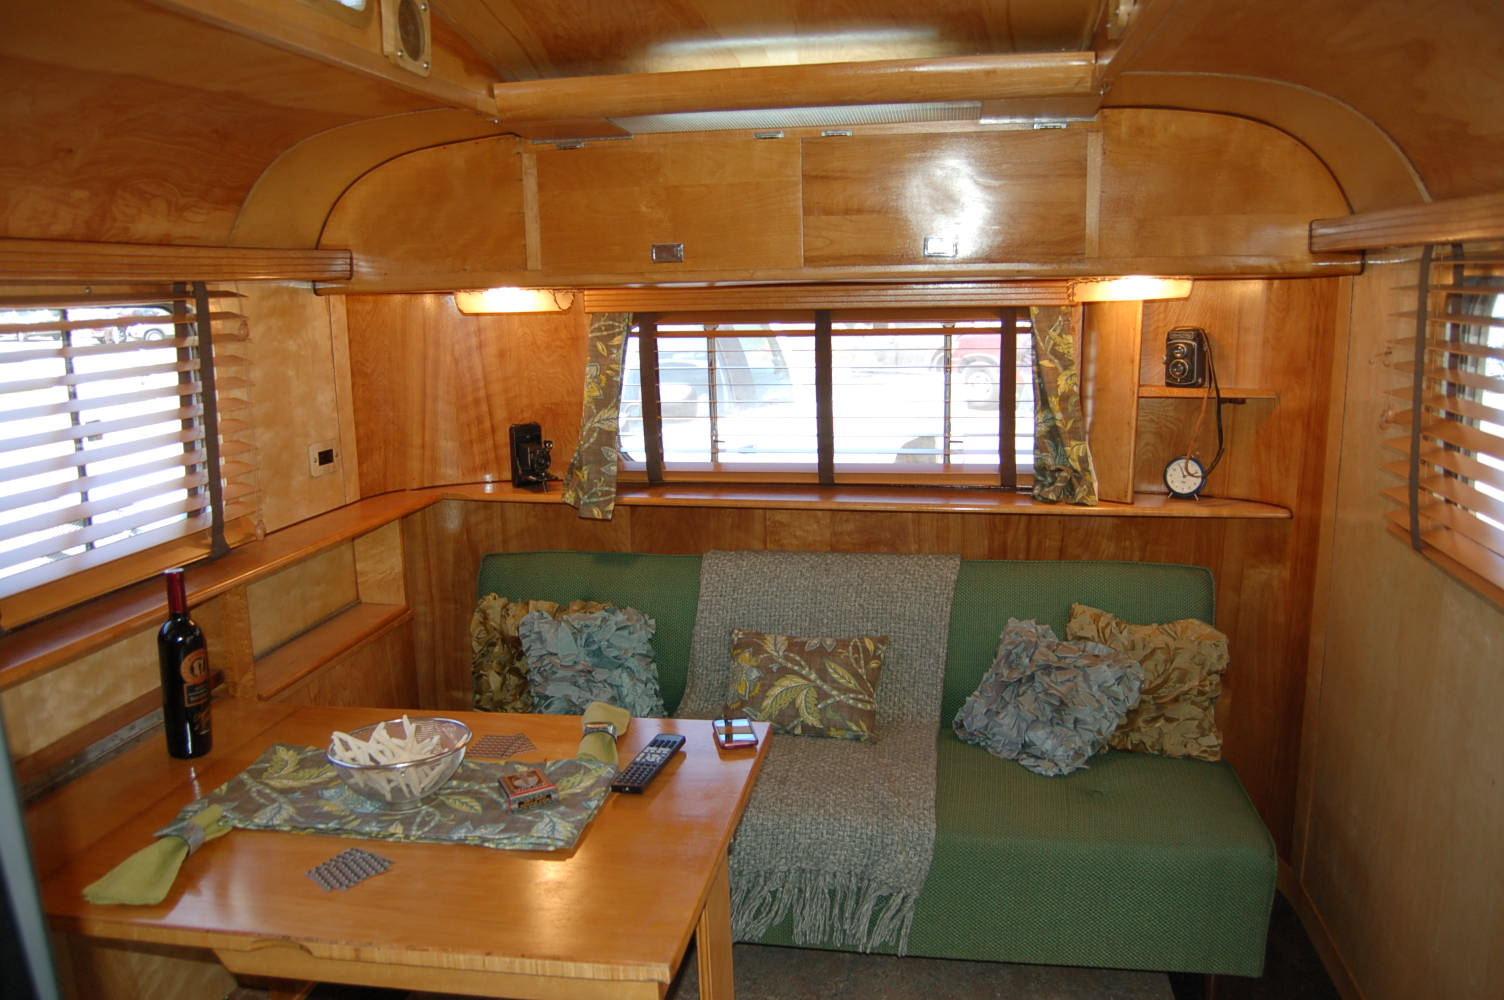 Vintage Trailer Interiors From the 1940\'s, from OldTrailer.com